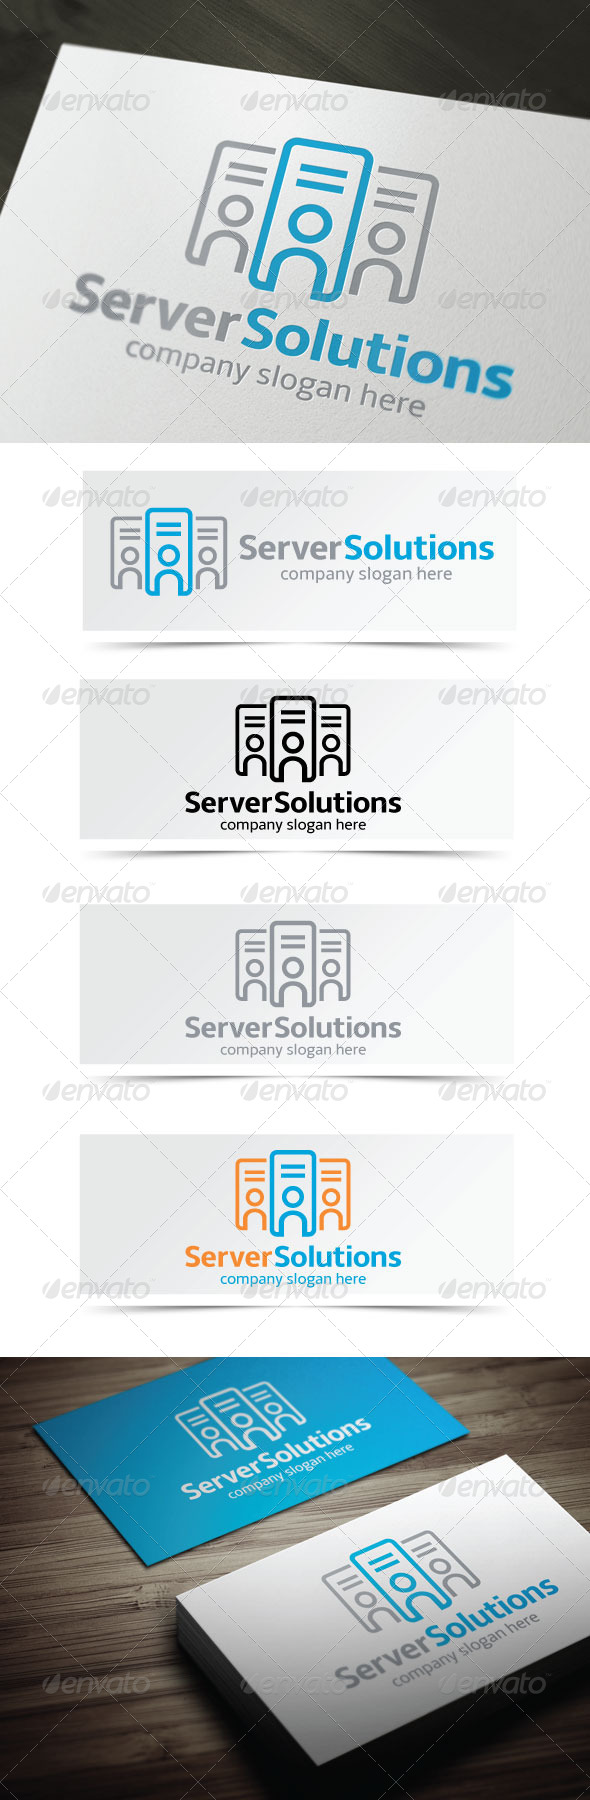 GraphicRiver Server Solutions 4226137